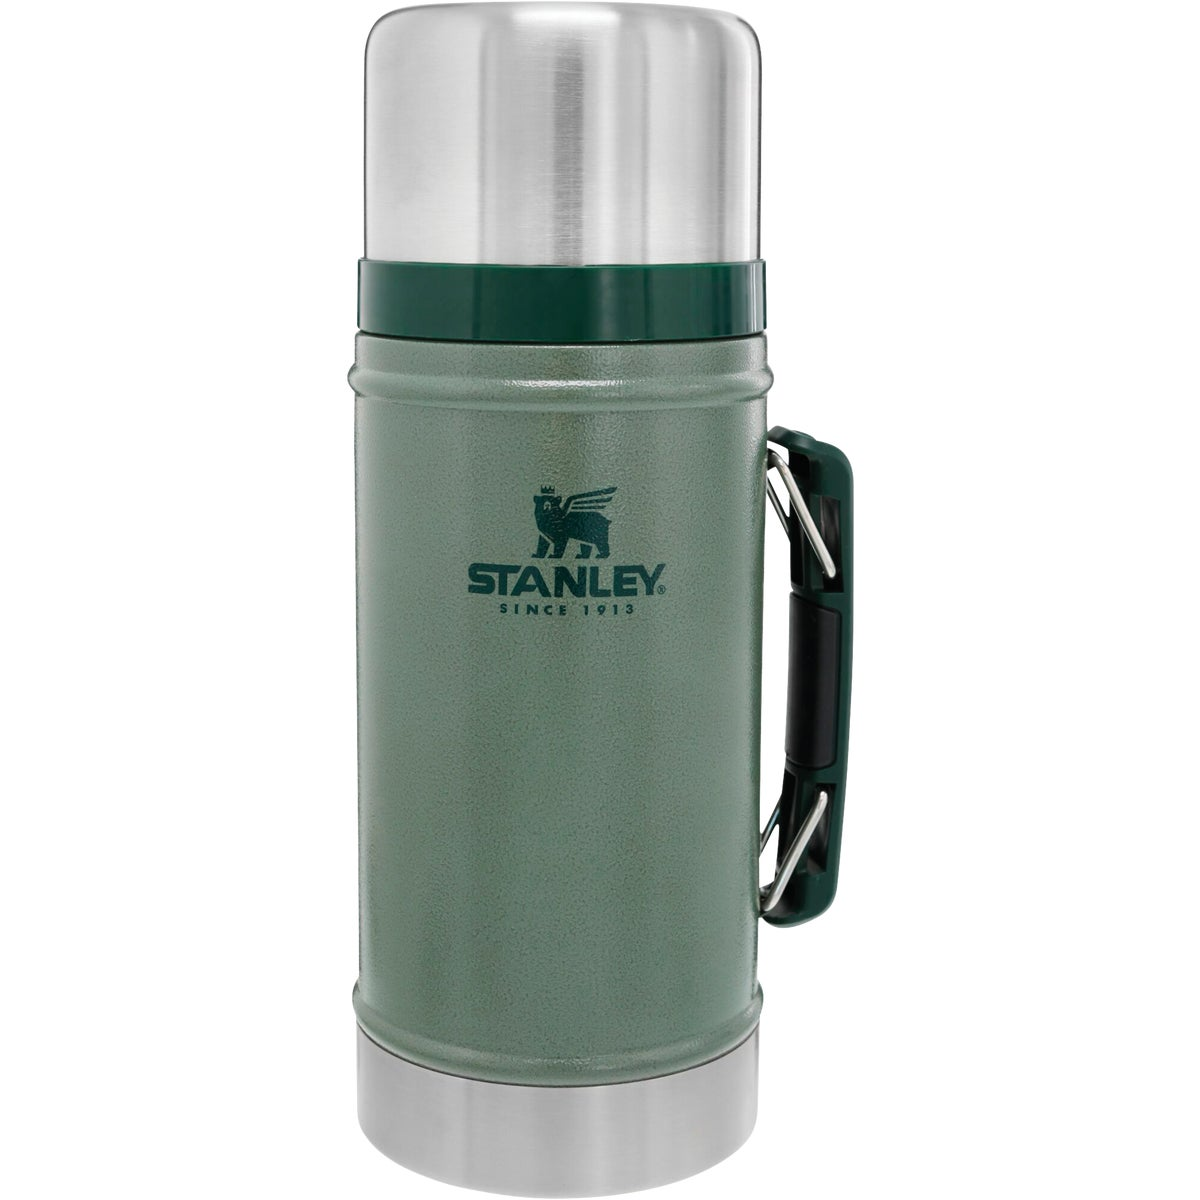 STANLEY 24OZ FOOD JAR - 10-01229-001 by Aladdin Pmi